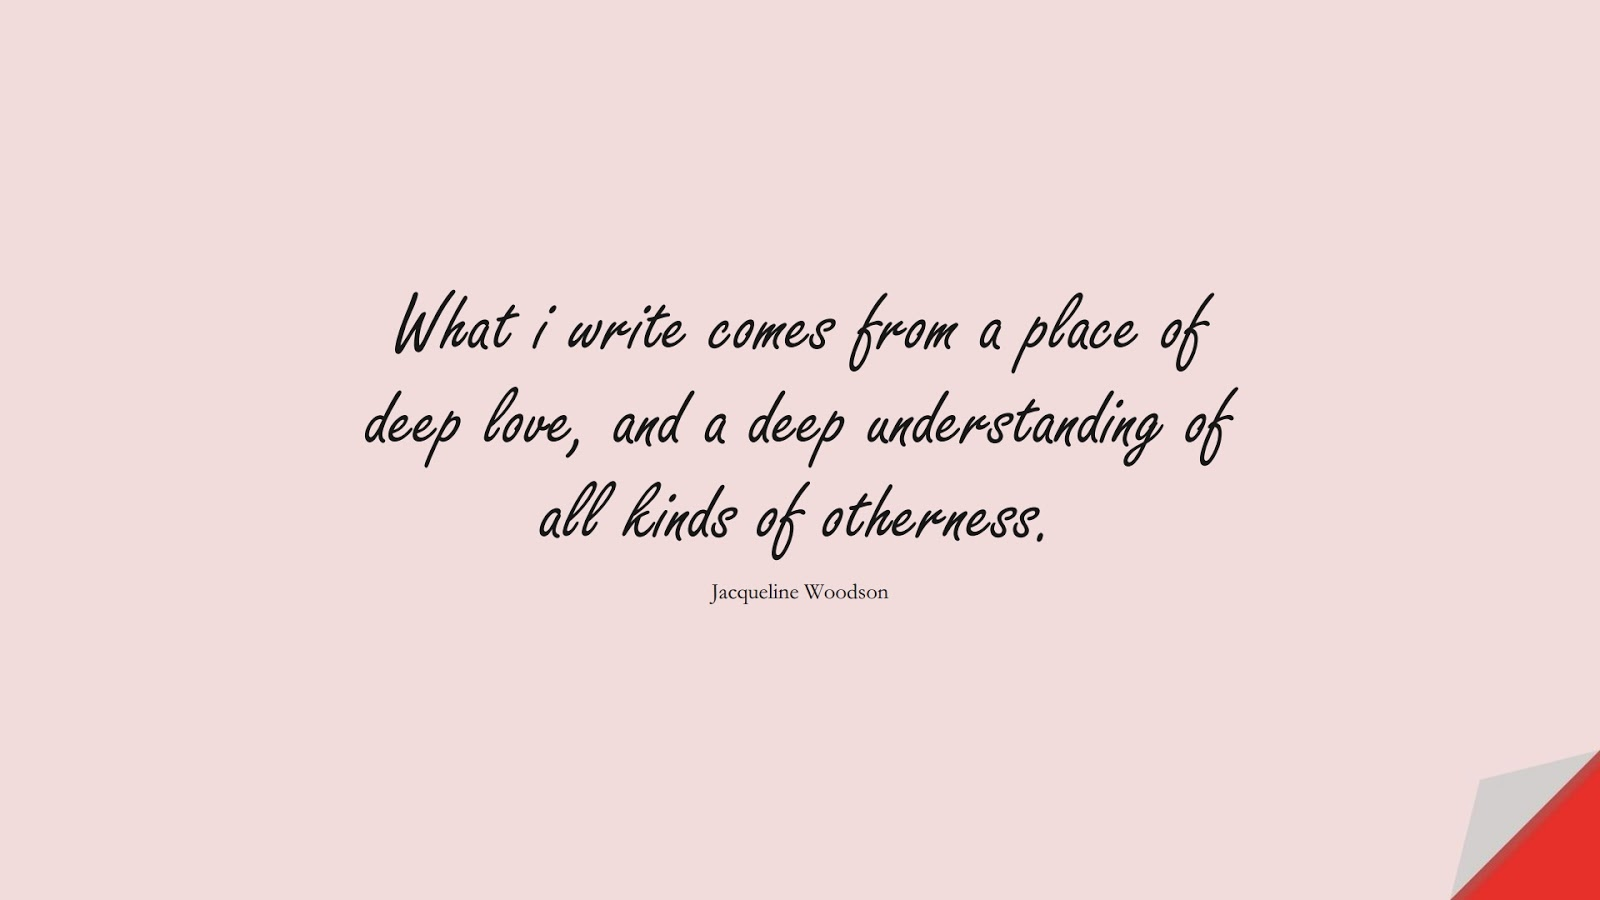 What i write comes from a place of deep love, and a deep understanding of all kinds of otherness. (Jacqueline Woodson);  #LoveQuotes